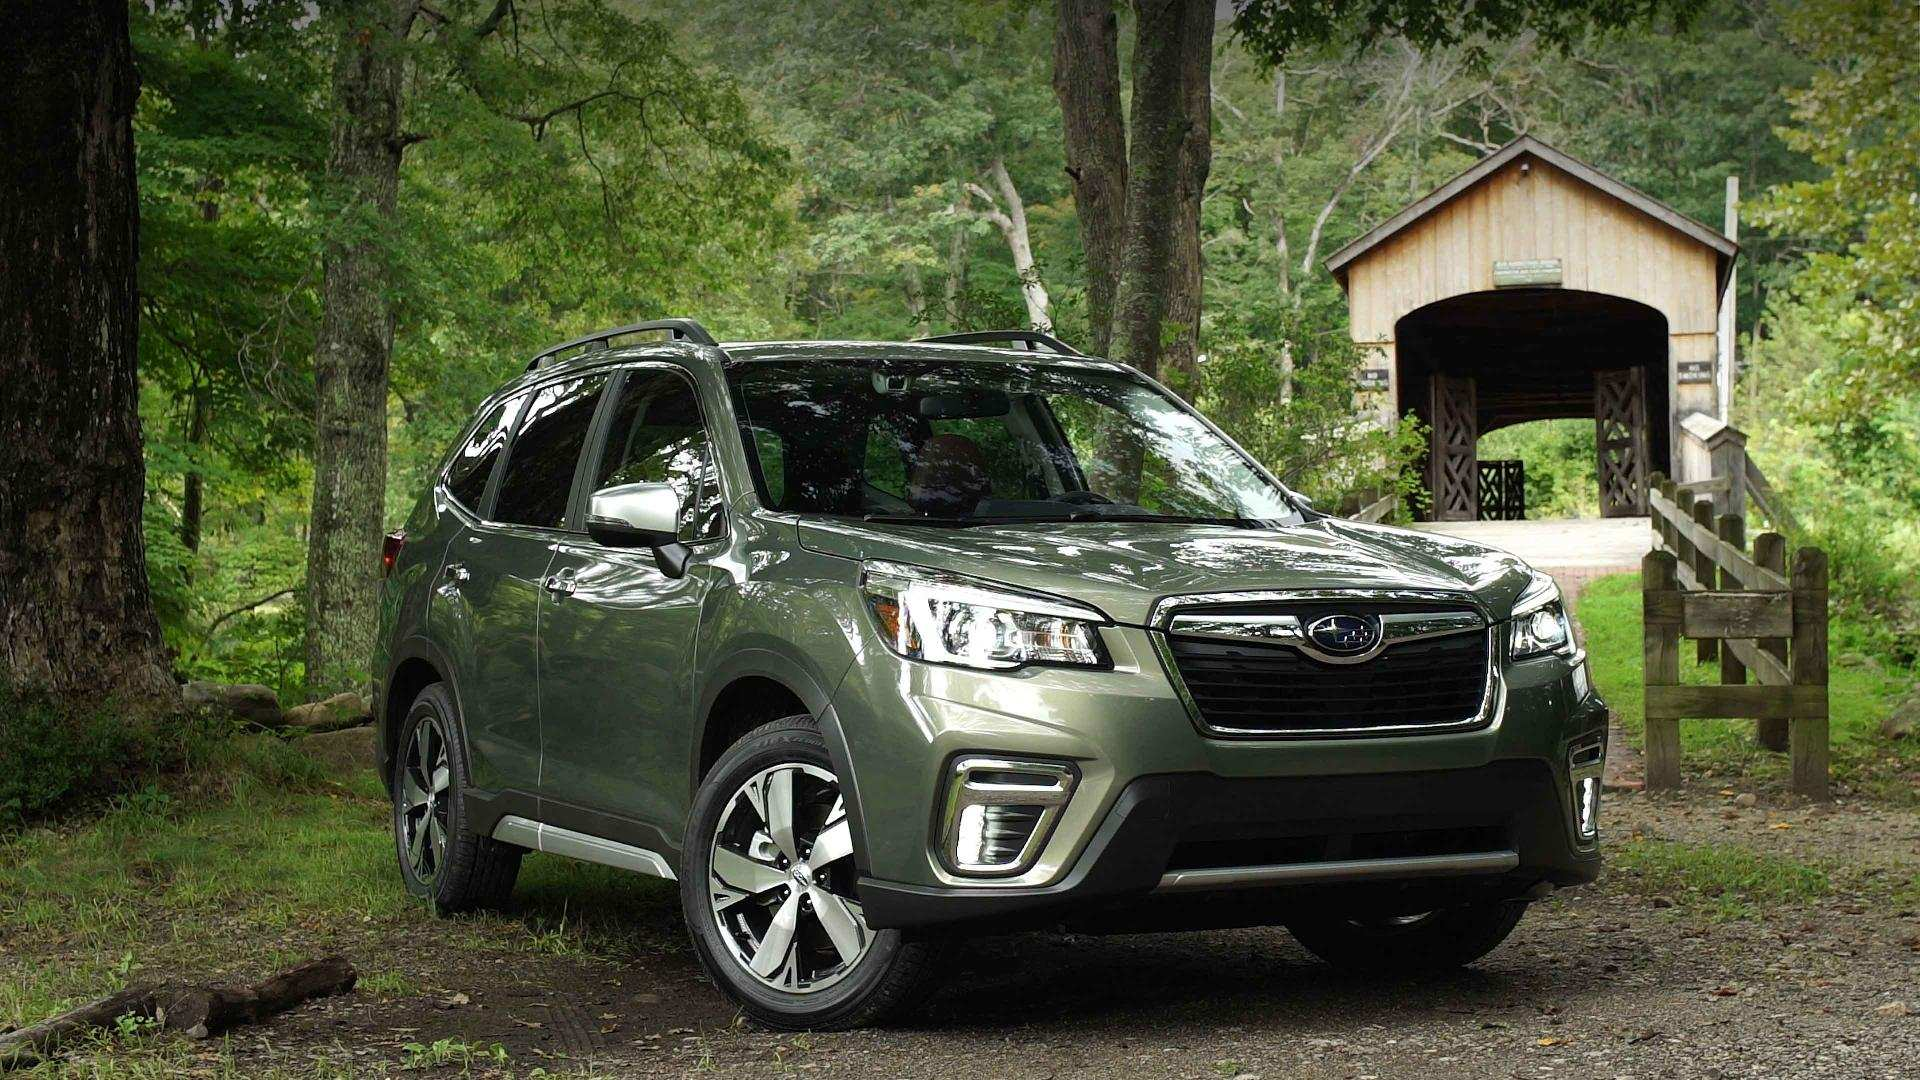 79 Gallery of New Subaru Forester 2019 Usa New Review Interior with New Subaru Forester 2019 Usa New Review